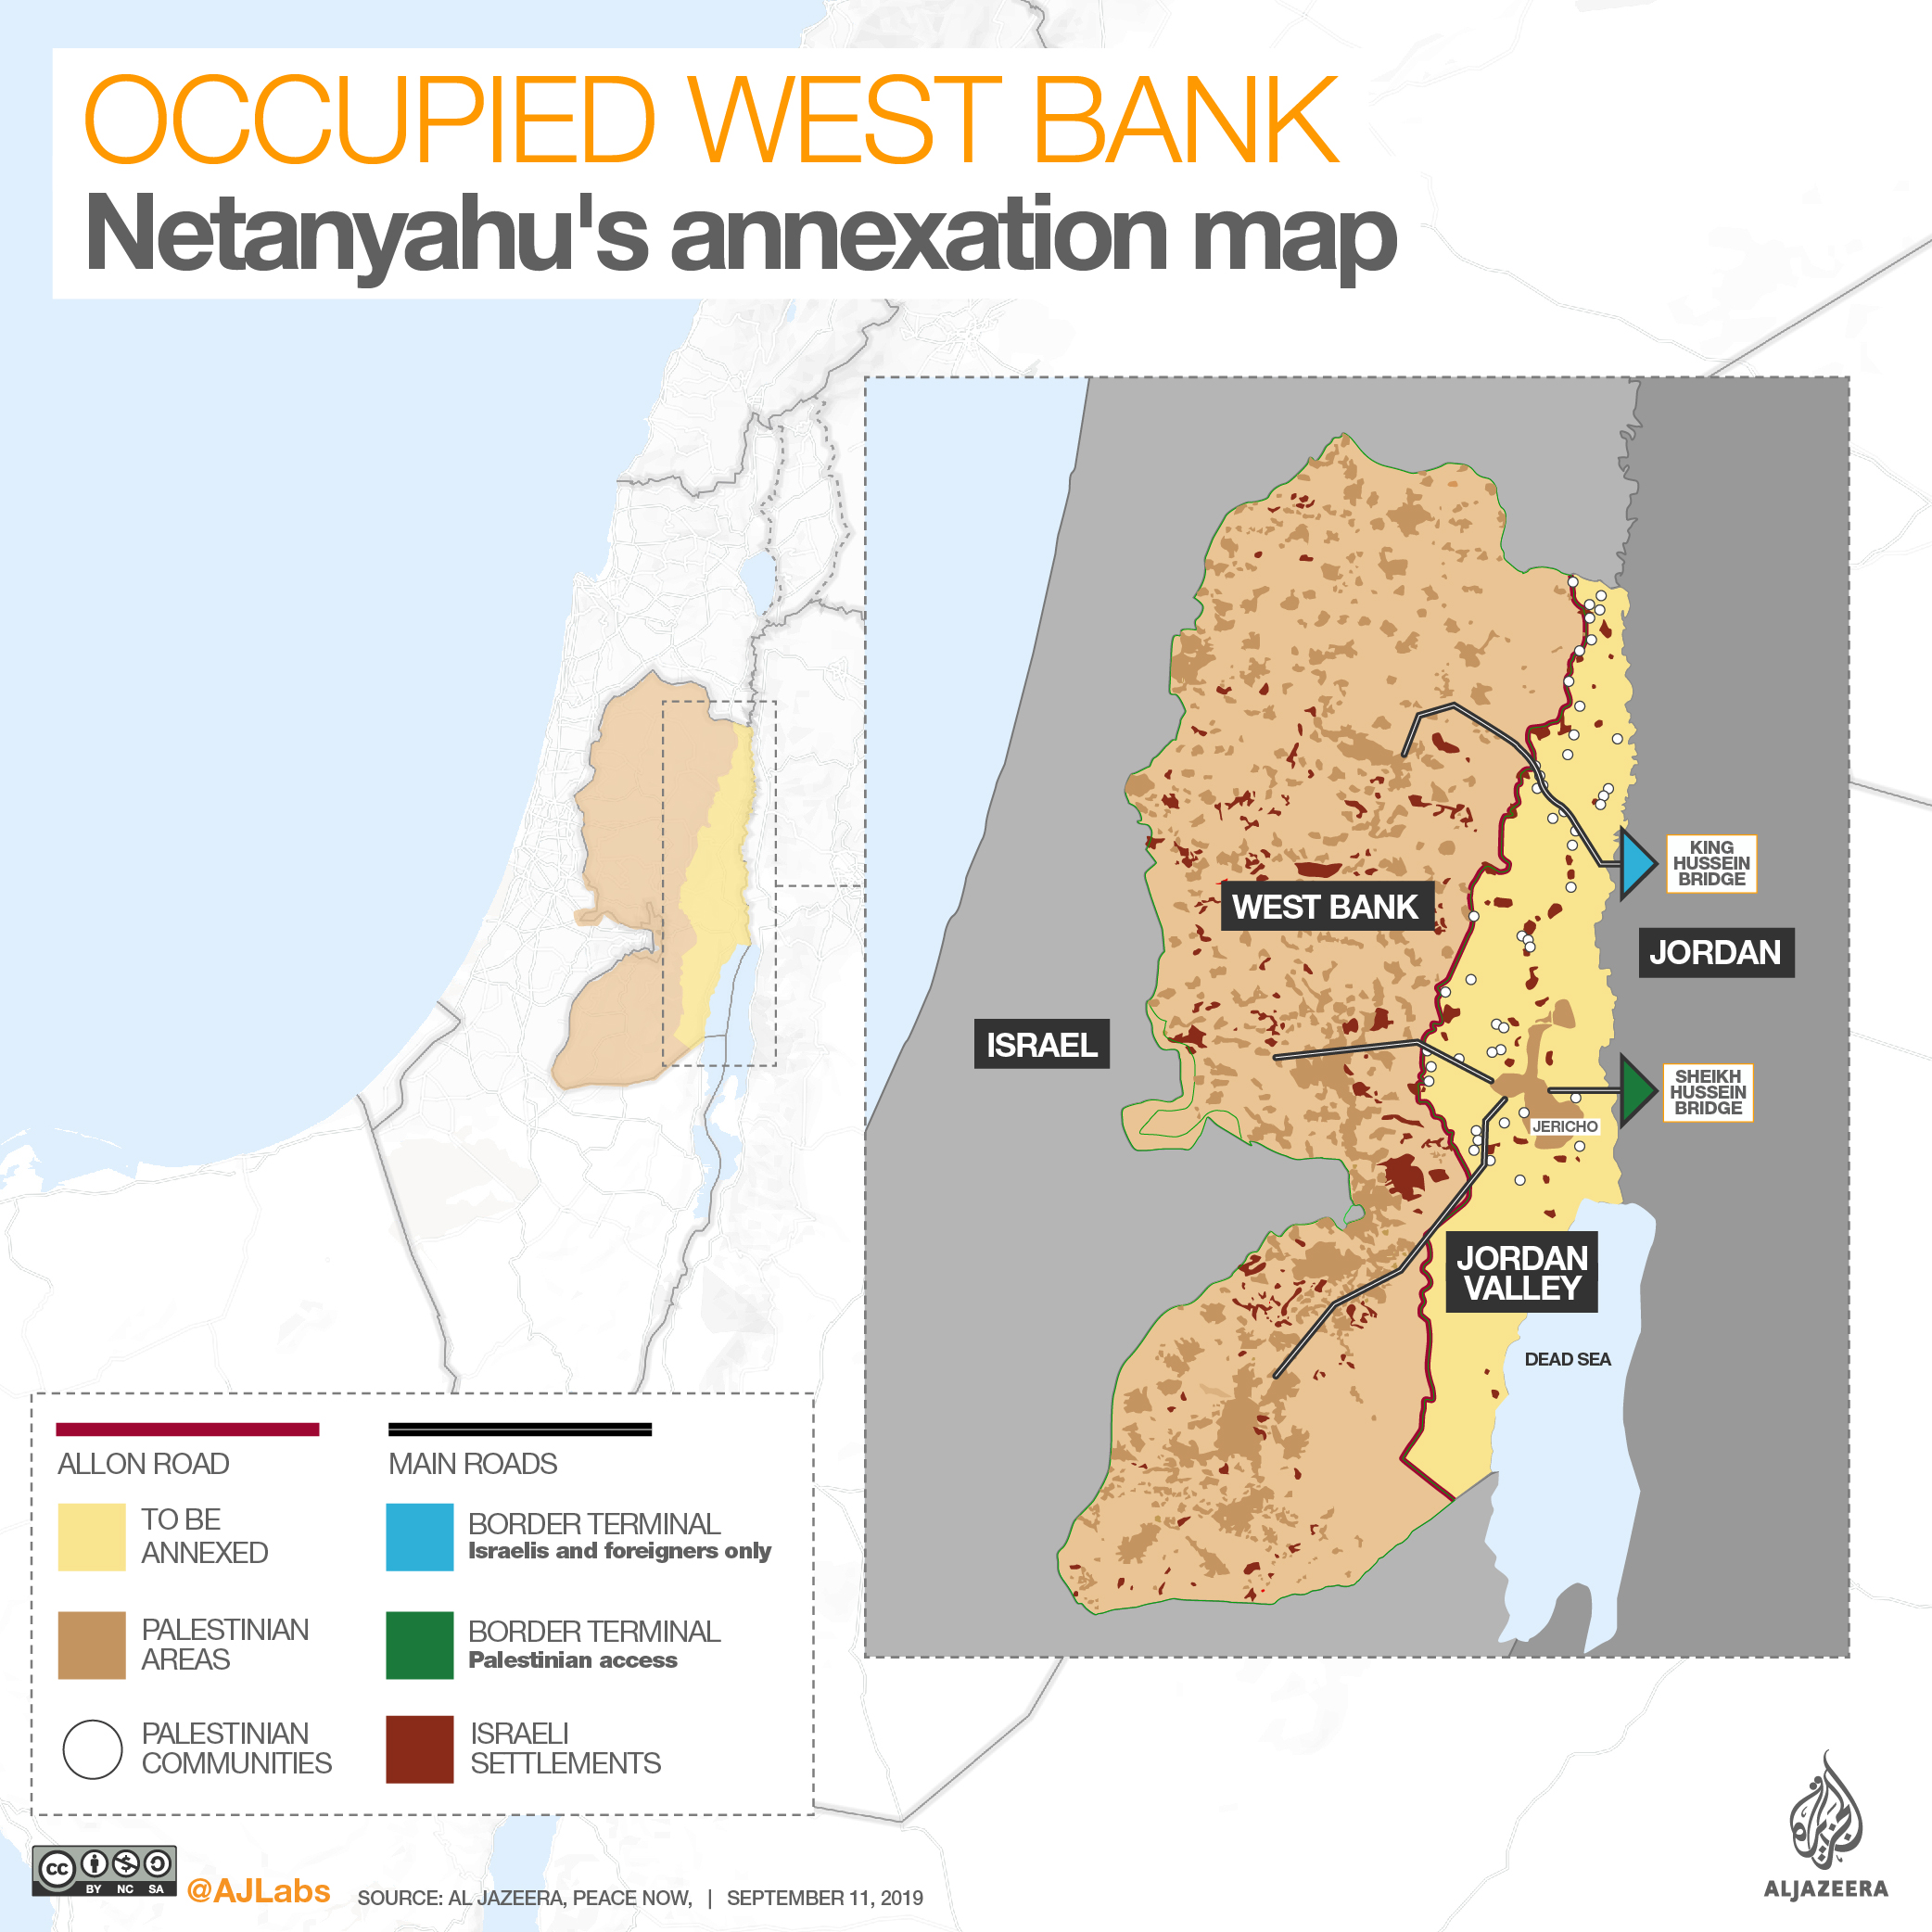 INTERACTIVE: Occupied West Bank - Jordan Valley Sept 12 2019